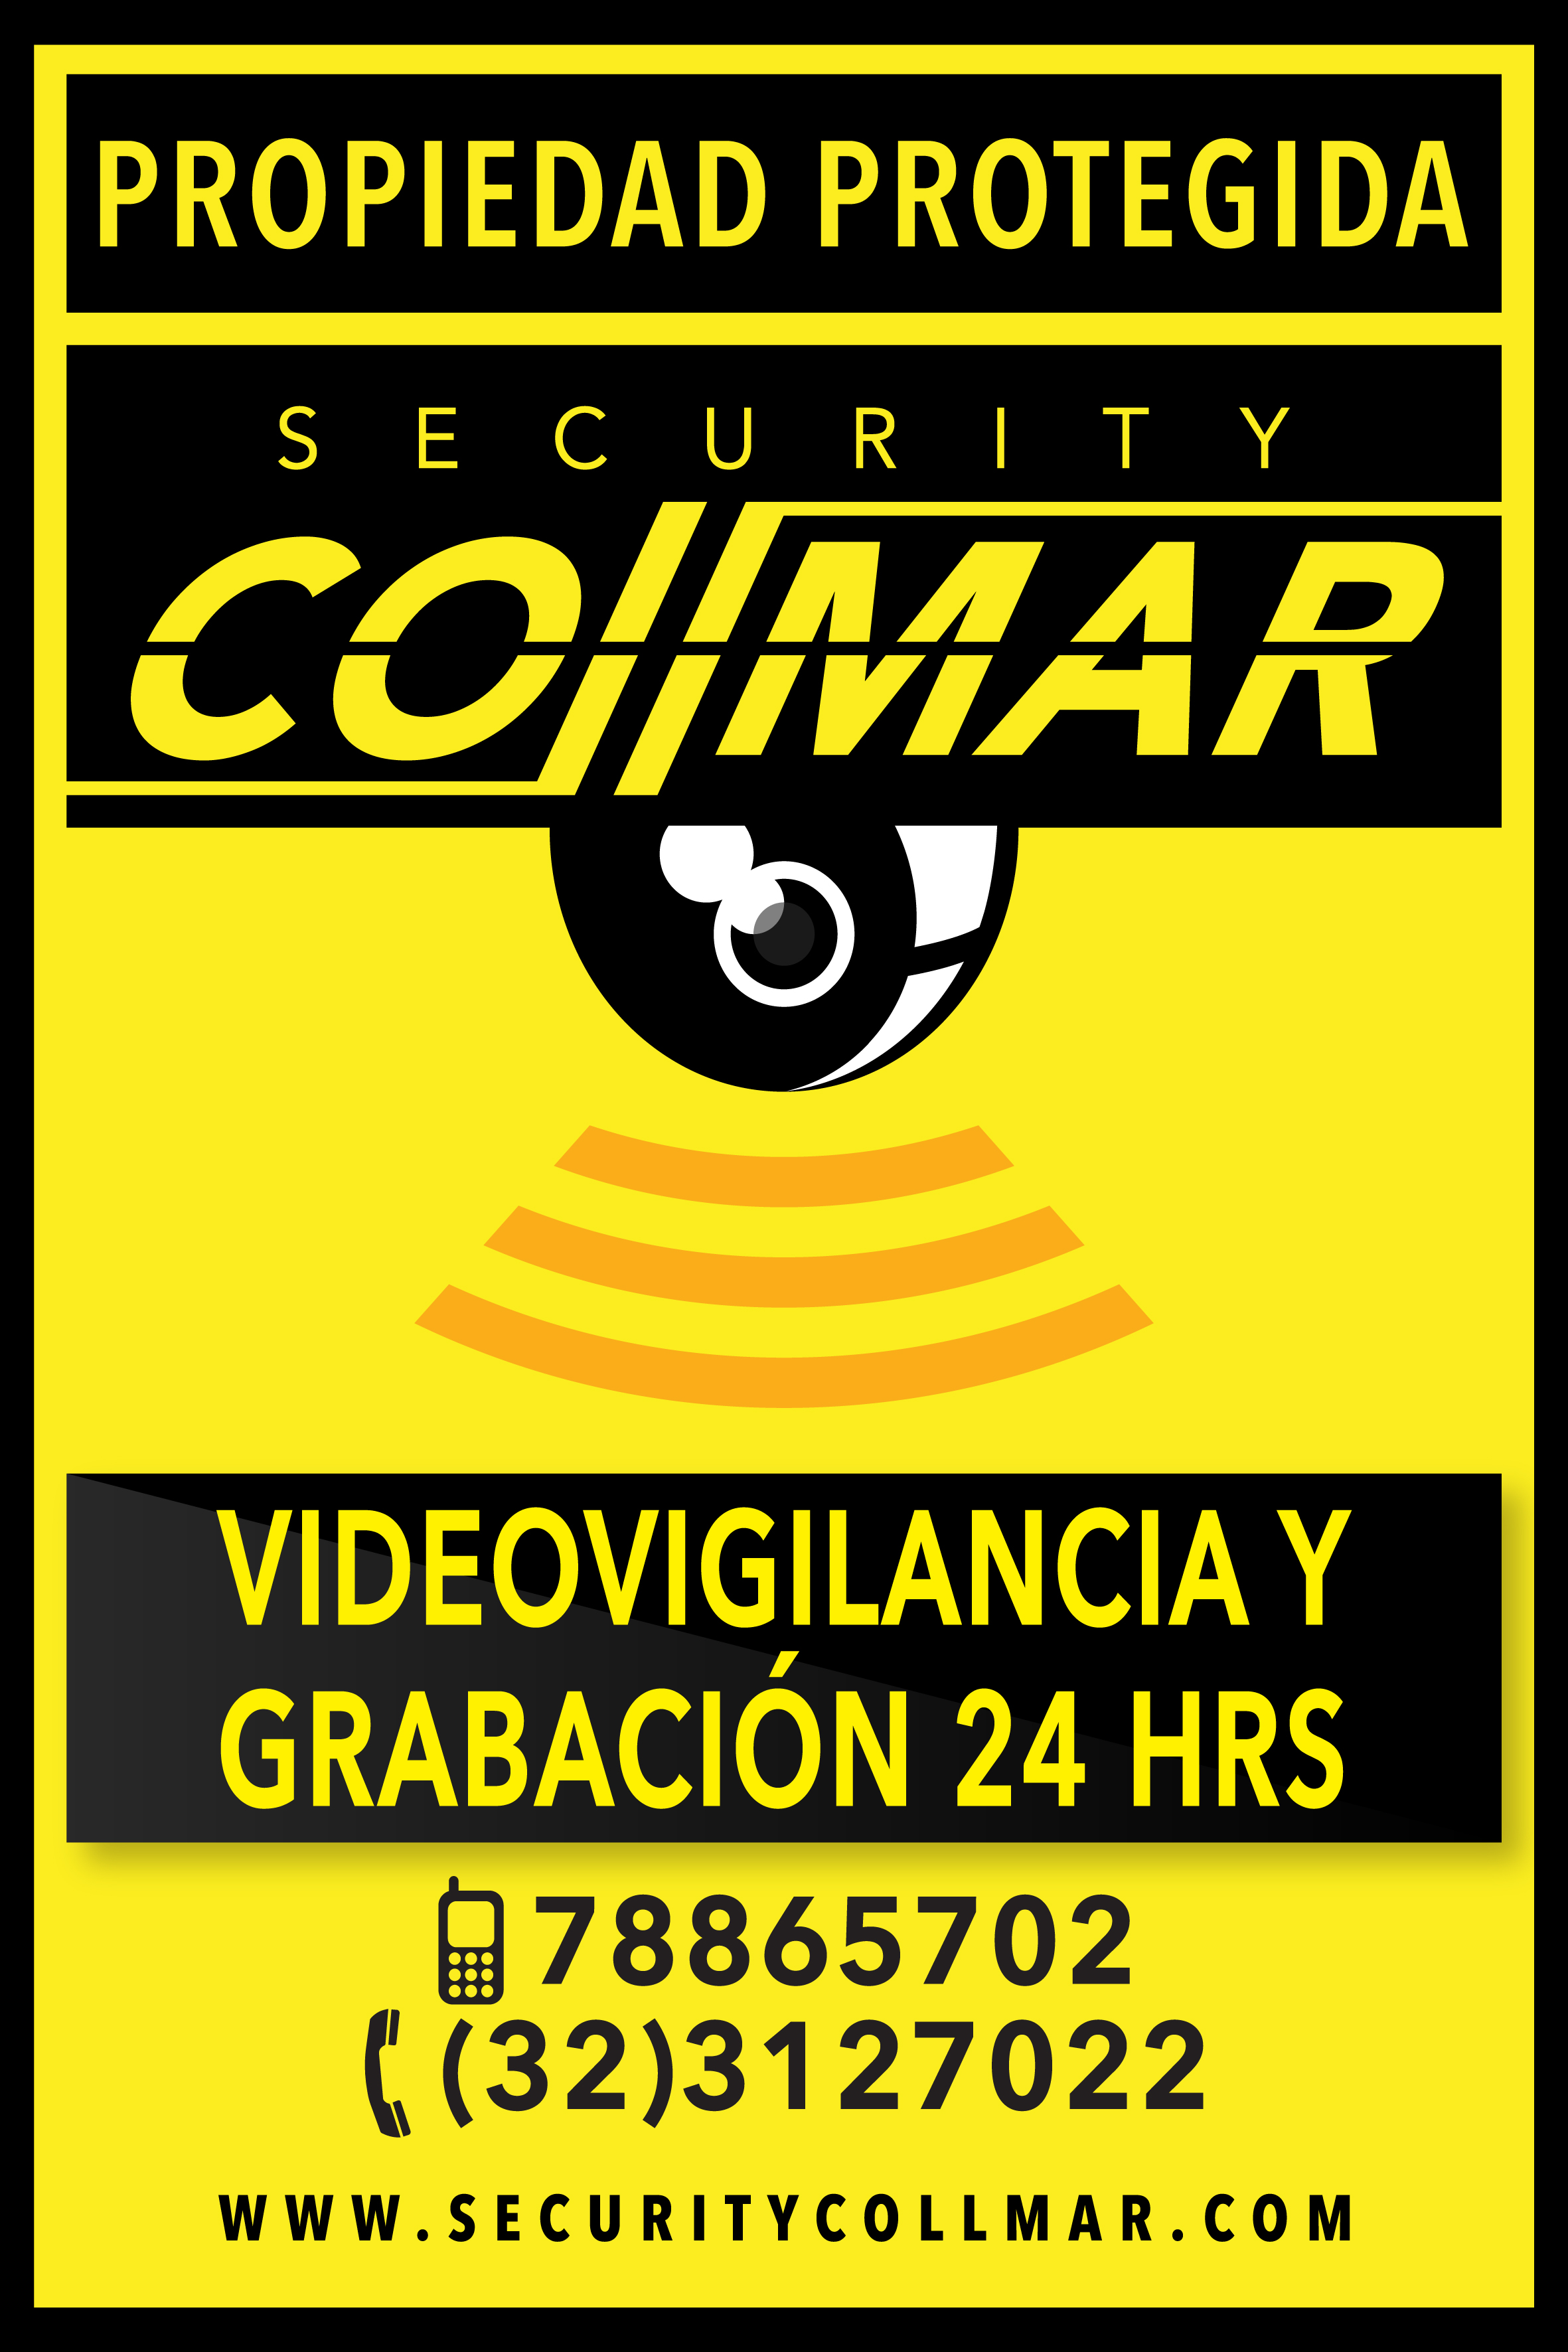 Securitycollmar